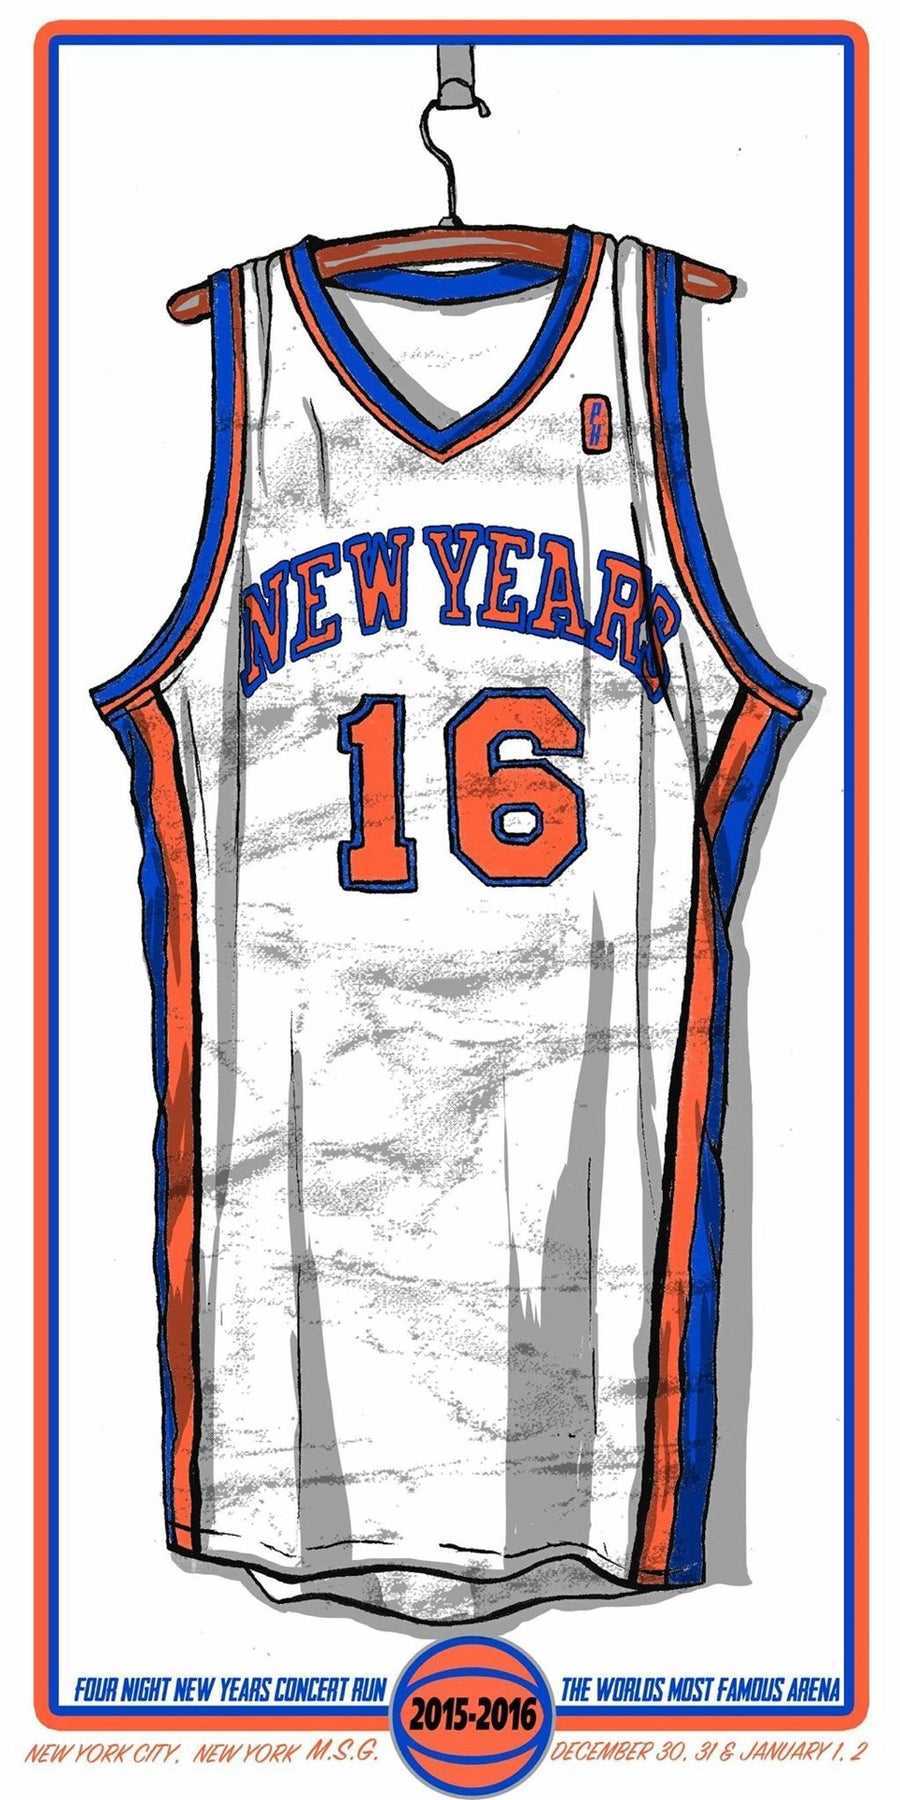 Image of New York Knicks NYE MSG print